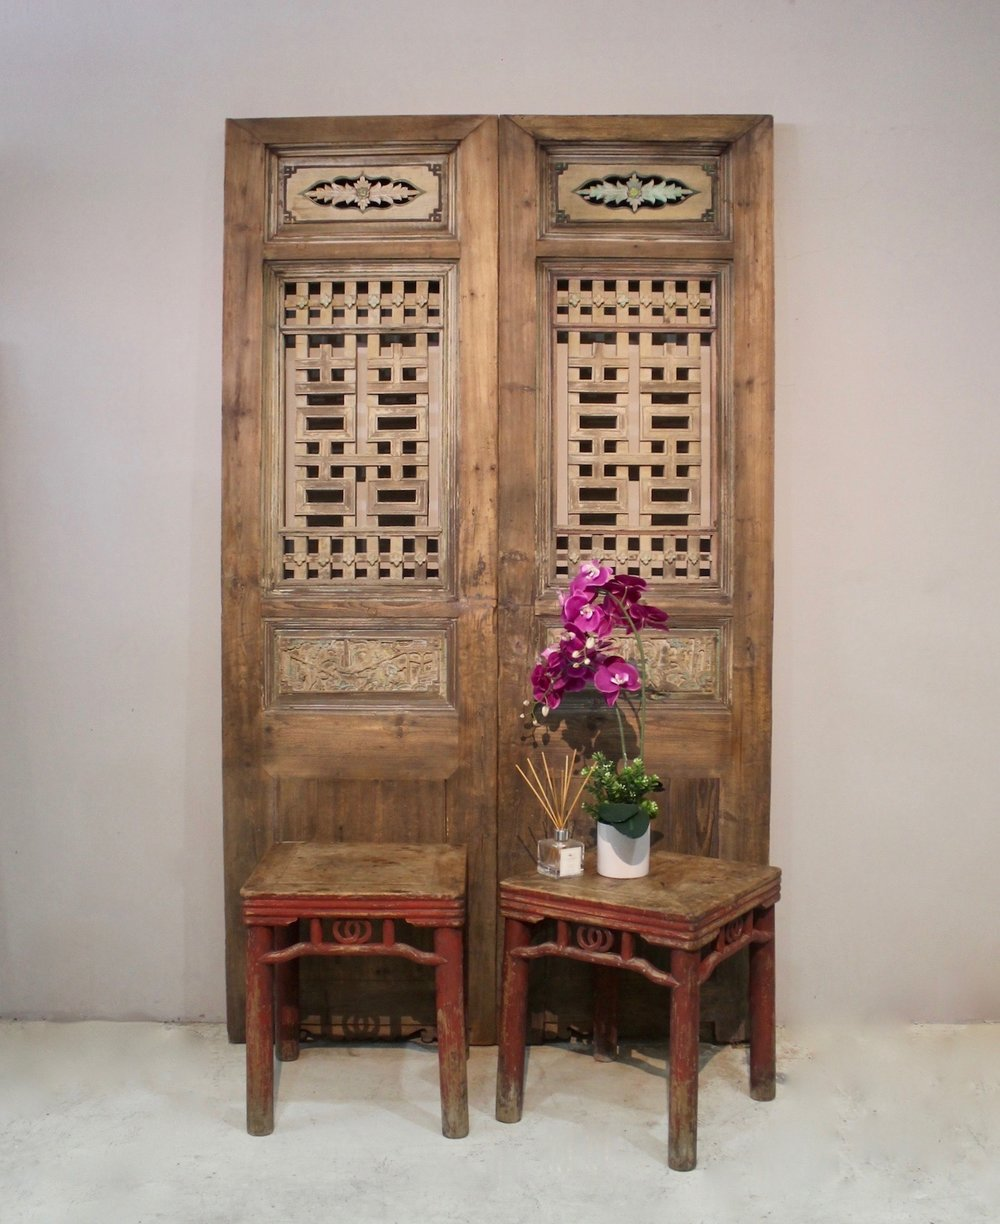 Antique door panels with double happiness from Fujian; and stools in very original condition, from Zhejiang.